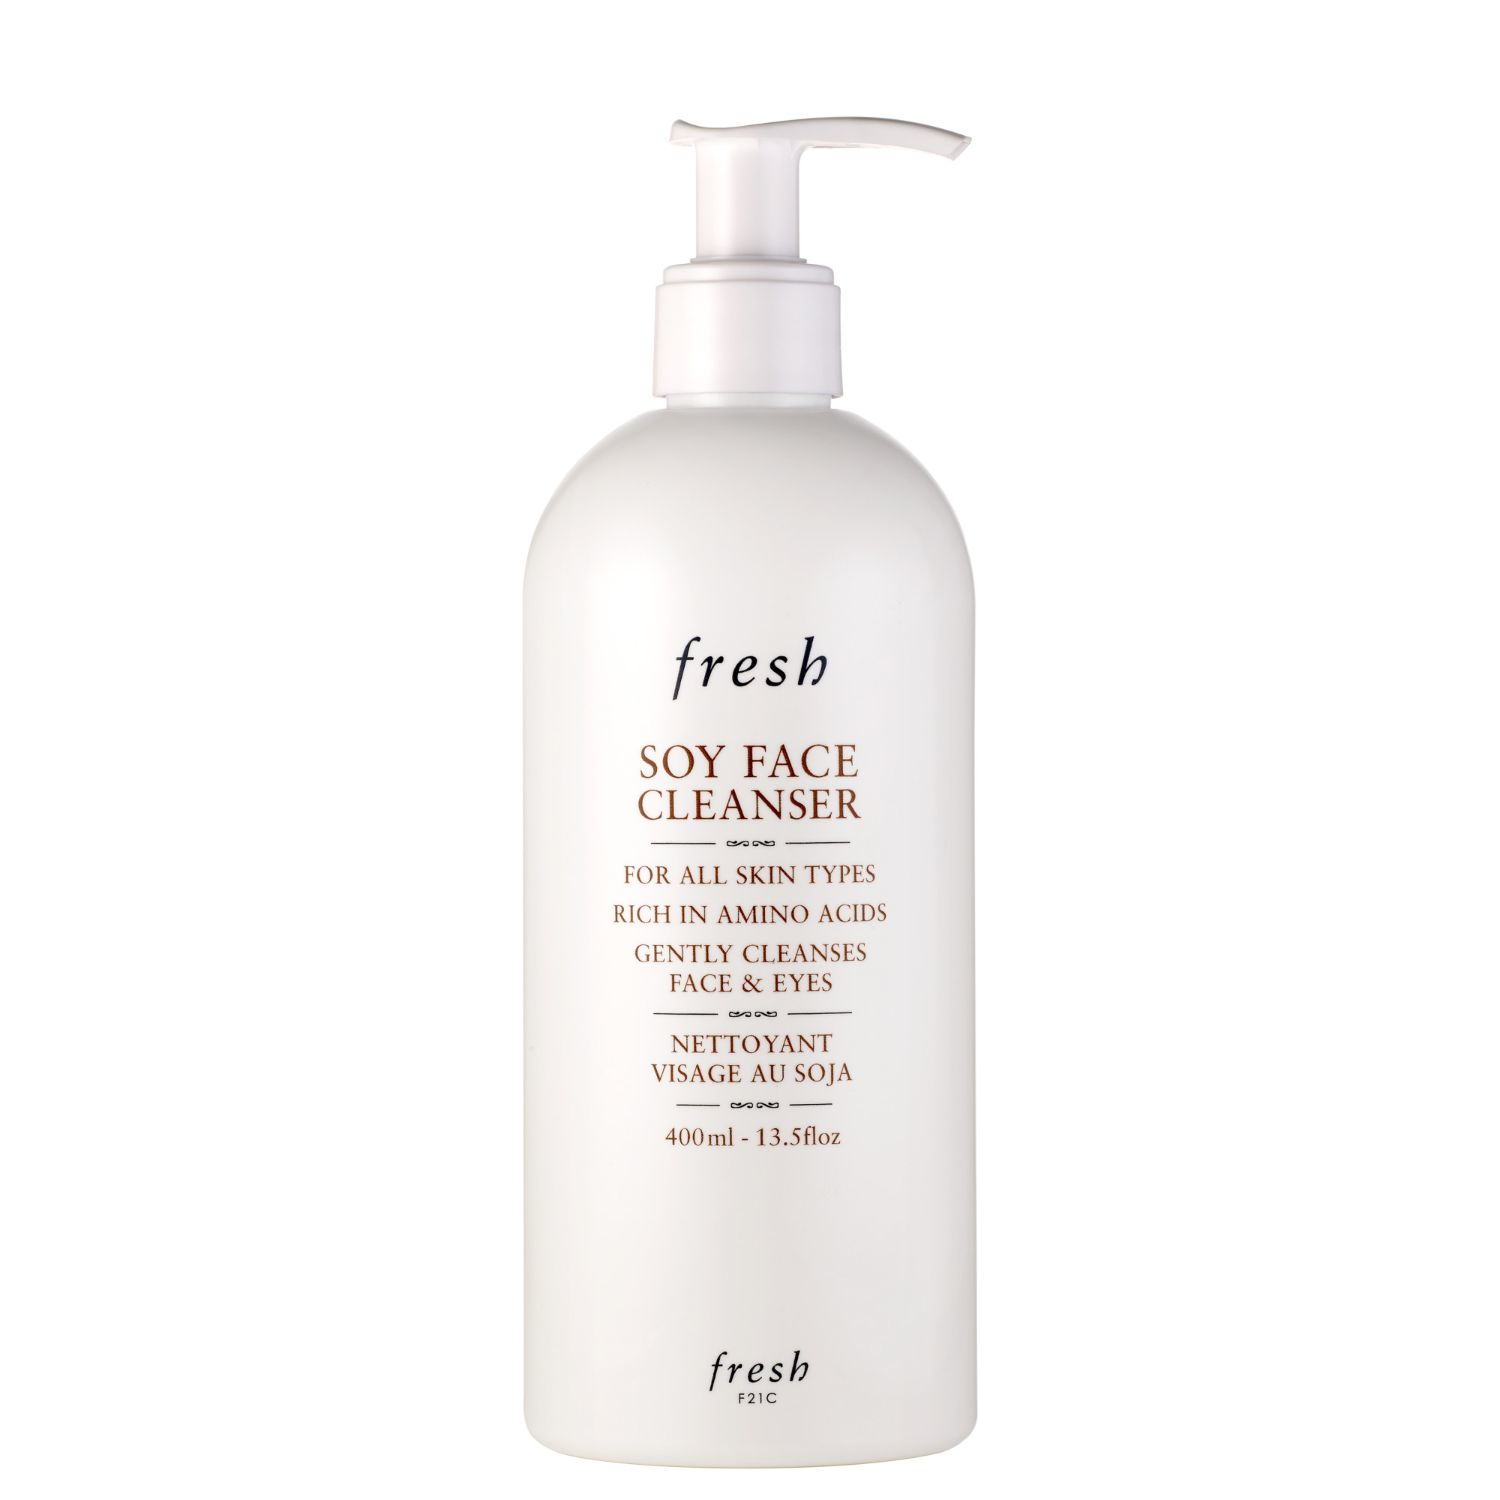 SOY MAKEUP REMOVING FACE WASH